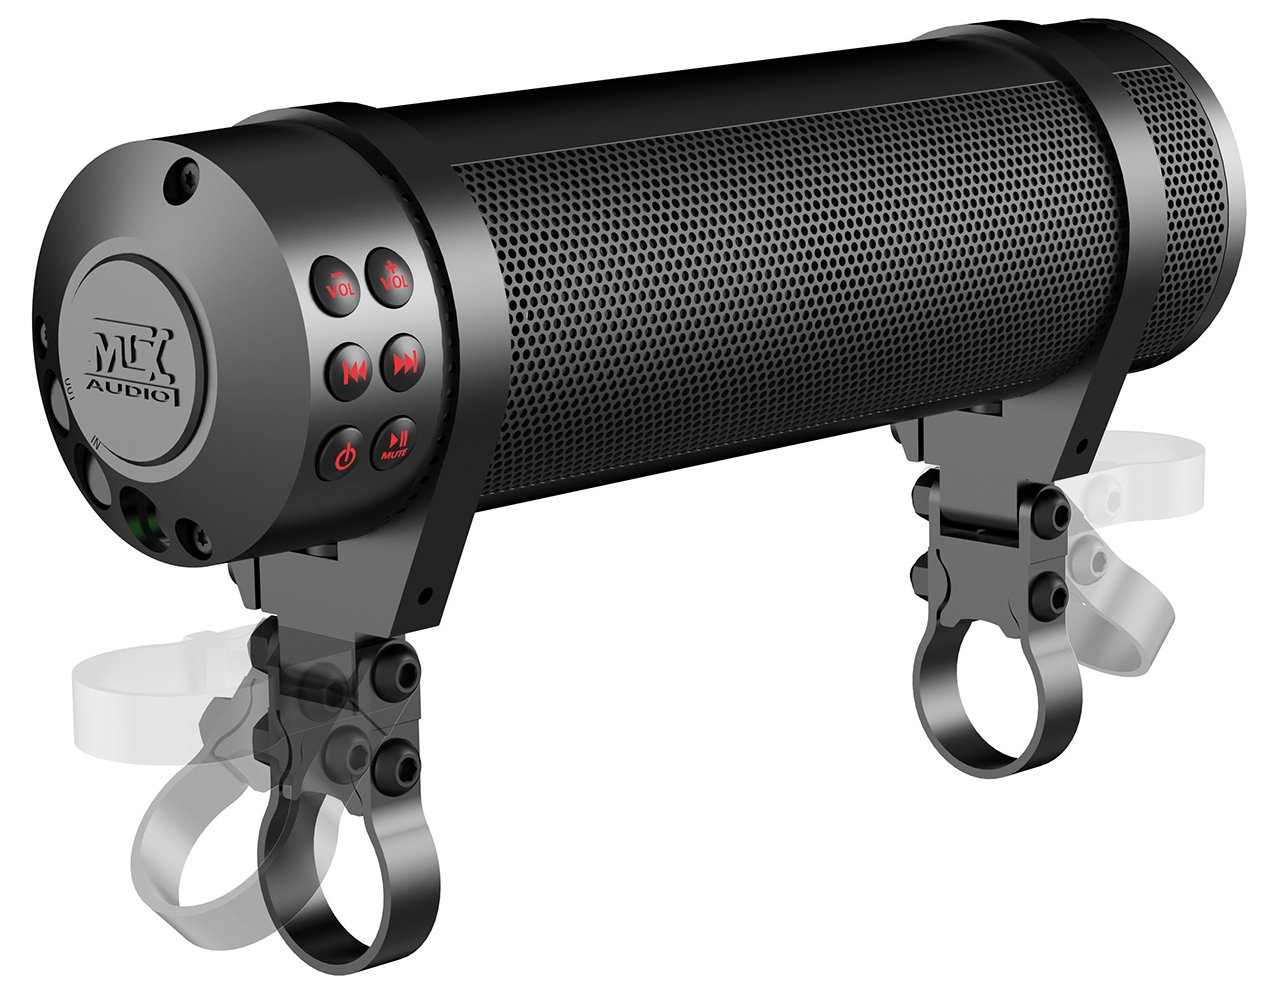 MTX MUDHSB-B Universal 6 Speaker All Weather Handlebar Sound System by MTX (Image #5)